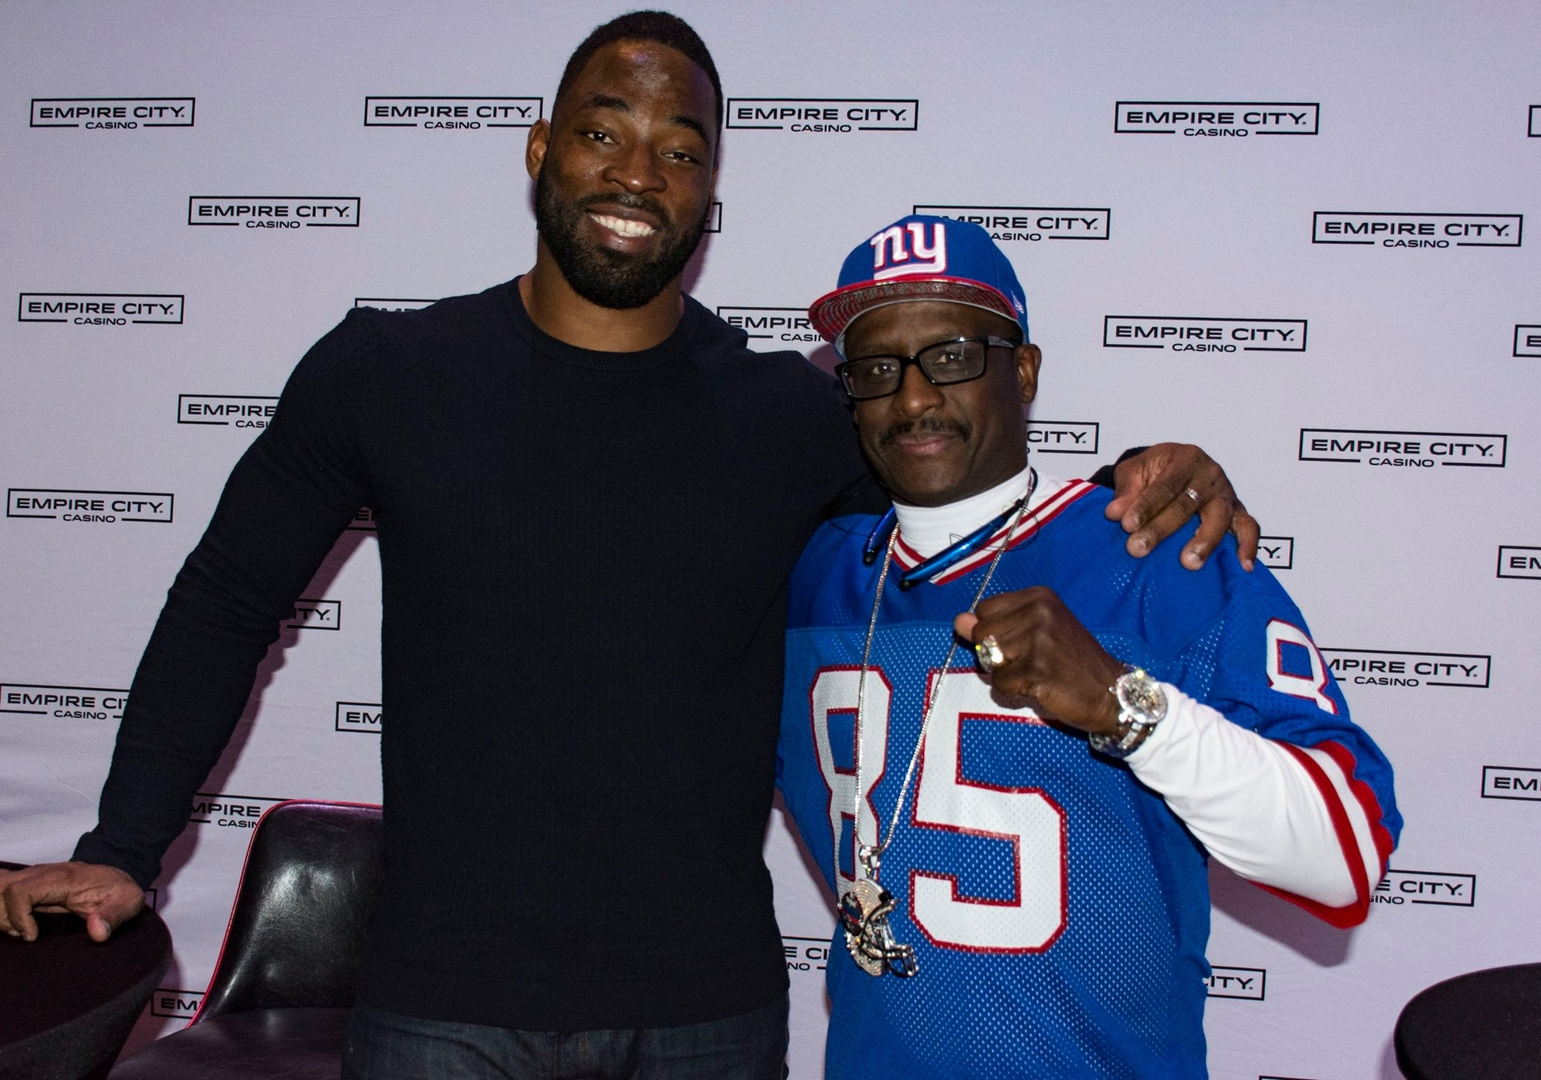 34ece0a2fca EMPIRE CITY CASINO HOSTS BIG GAME VIEWING PARTY WITH GIANTS SUPER BOWL  CHAMPIONS JUSTIN TUCK AND STEPHEN BAKER